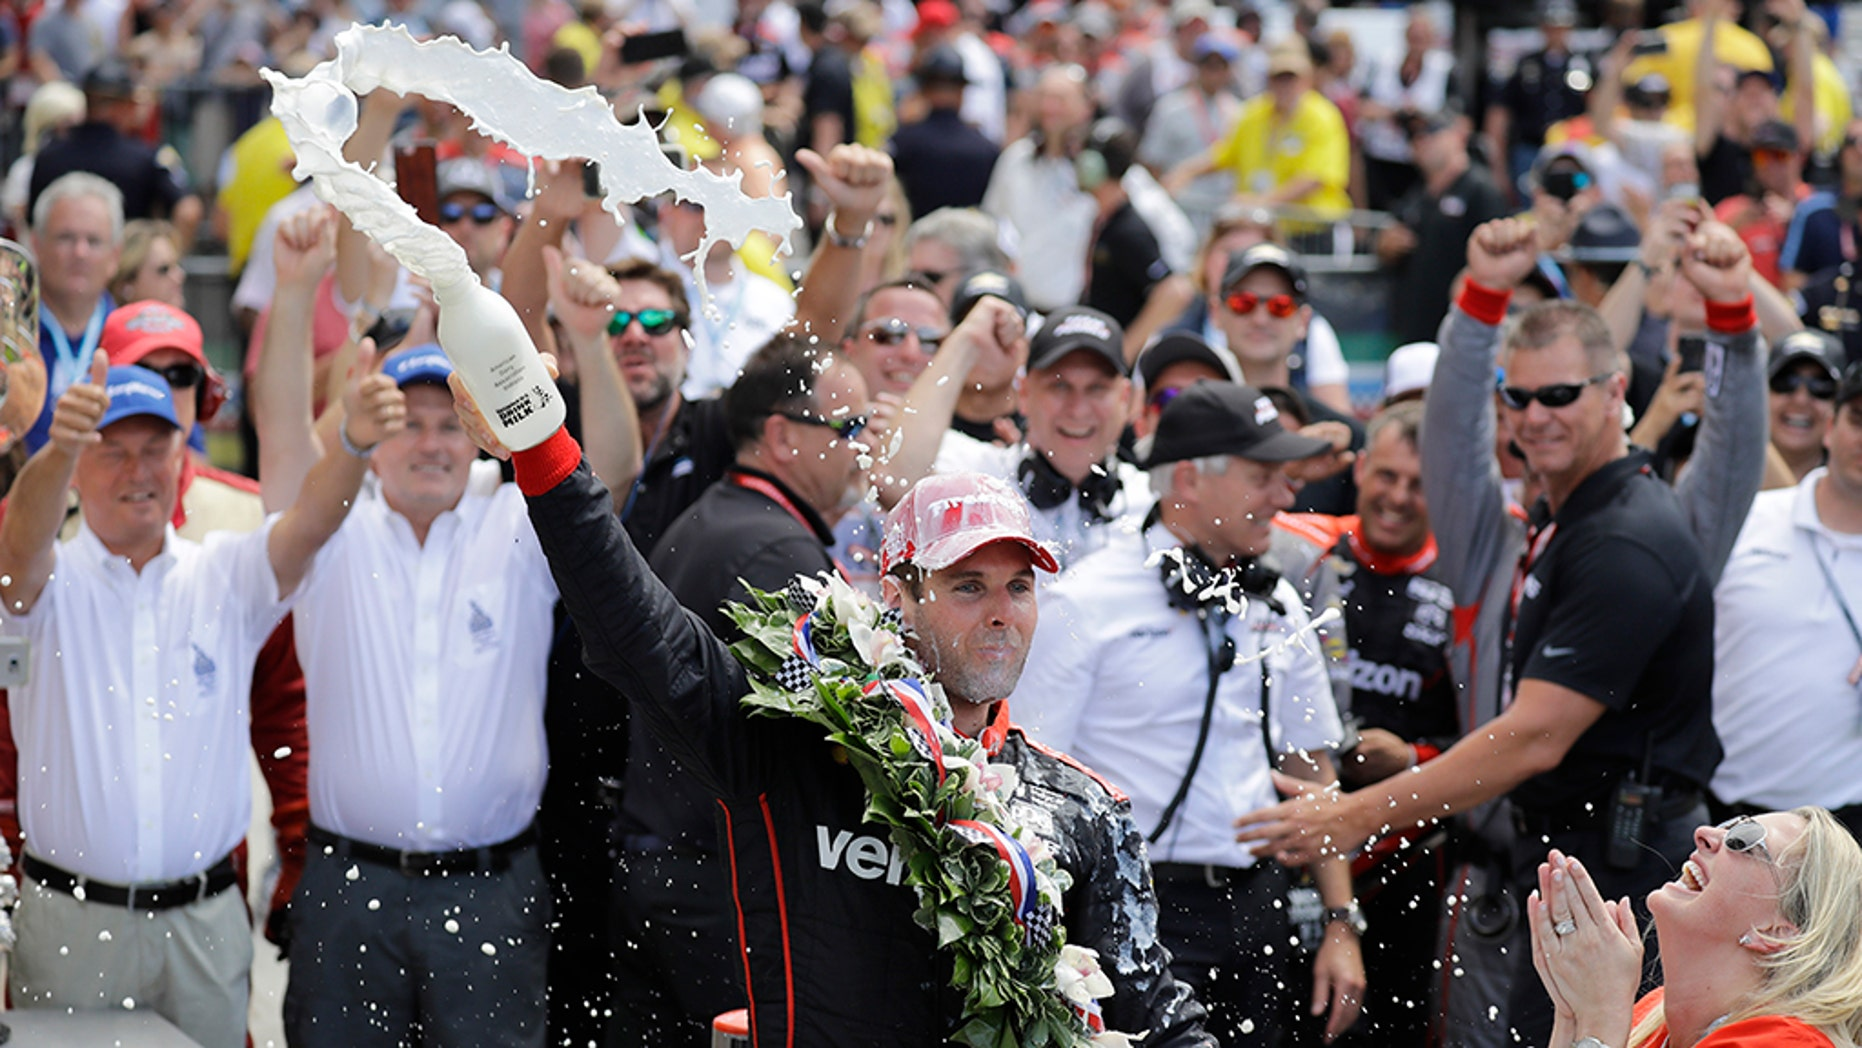 Australian driver Will Power won Sunday's Indianapolis 500.